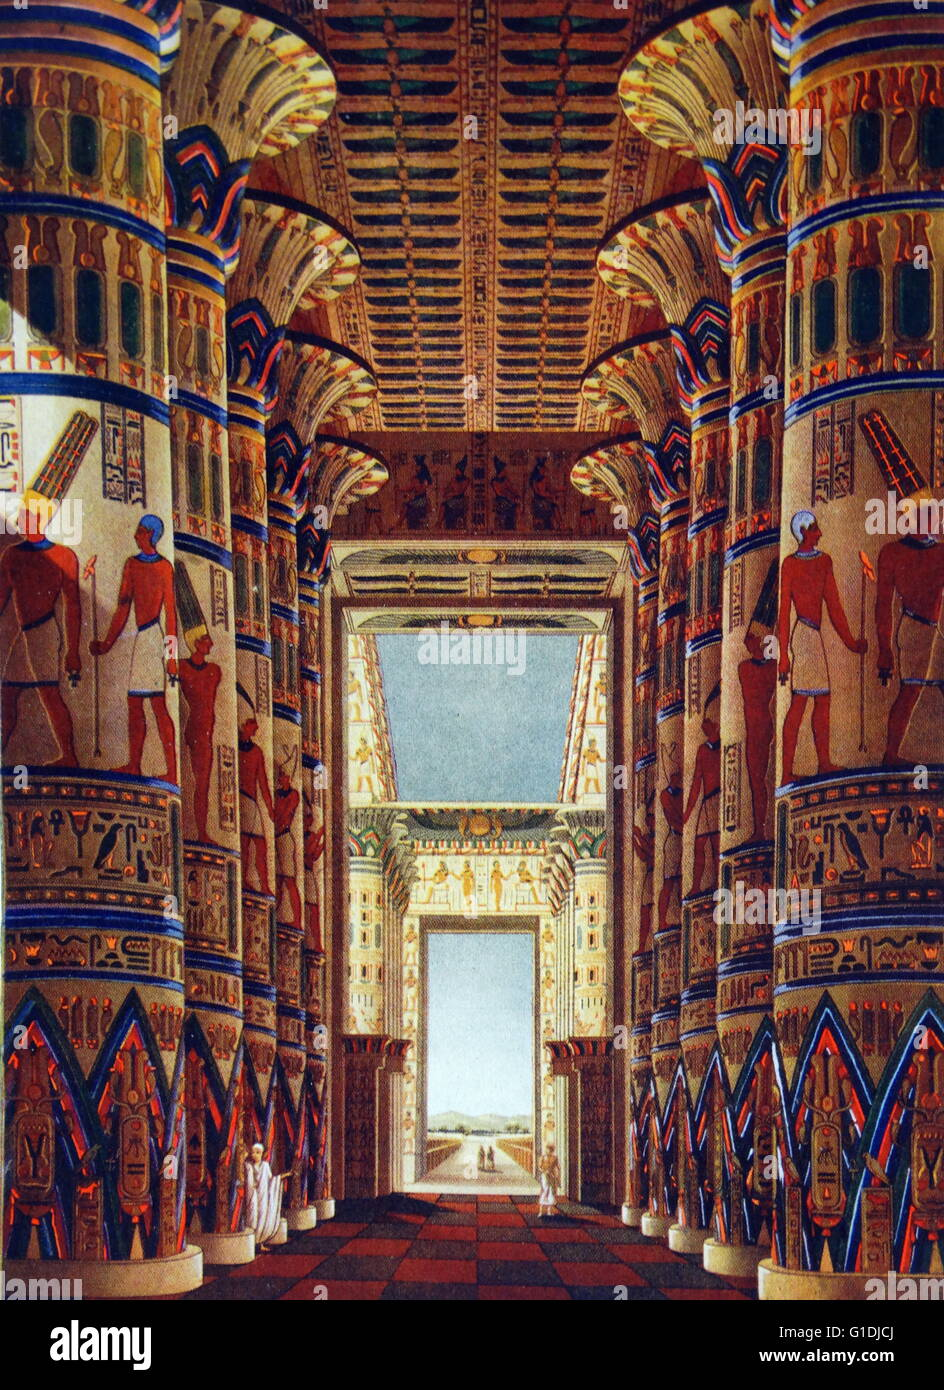 Amun Re Photographic Arts: The Great Hypostyle Hall Of Karnak, Located Within The